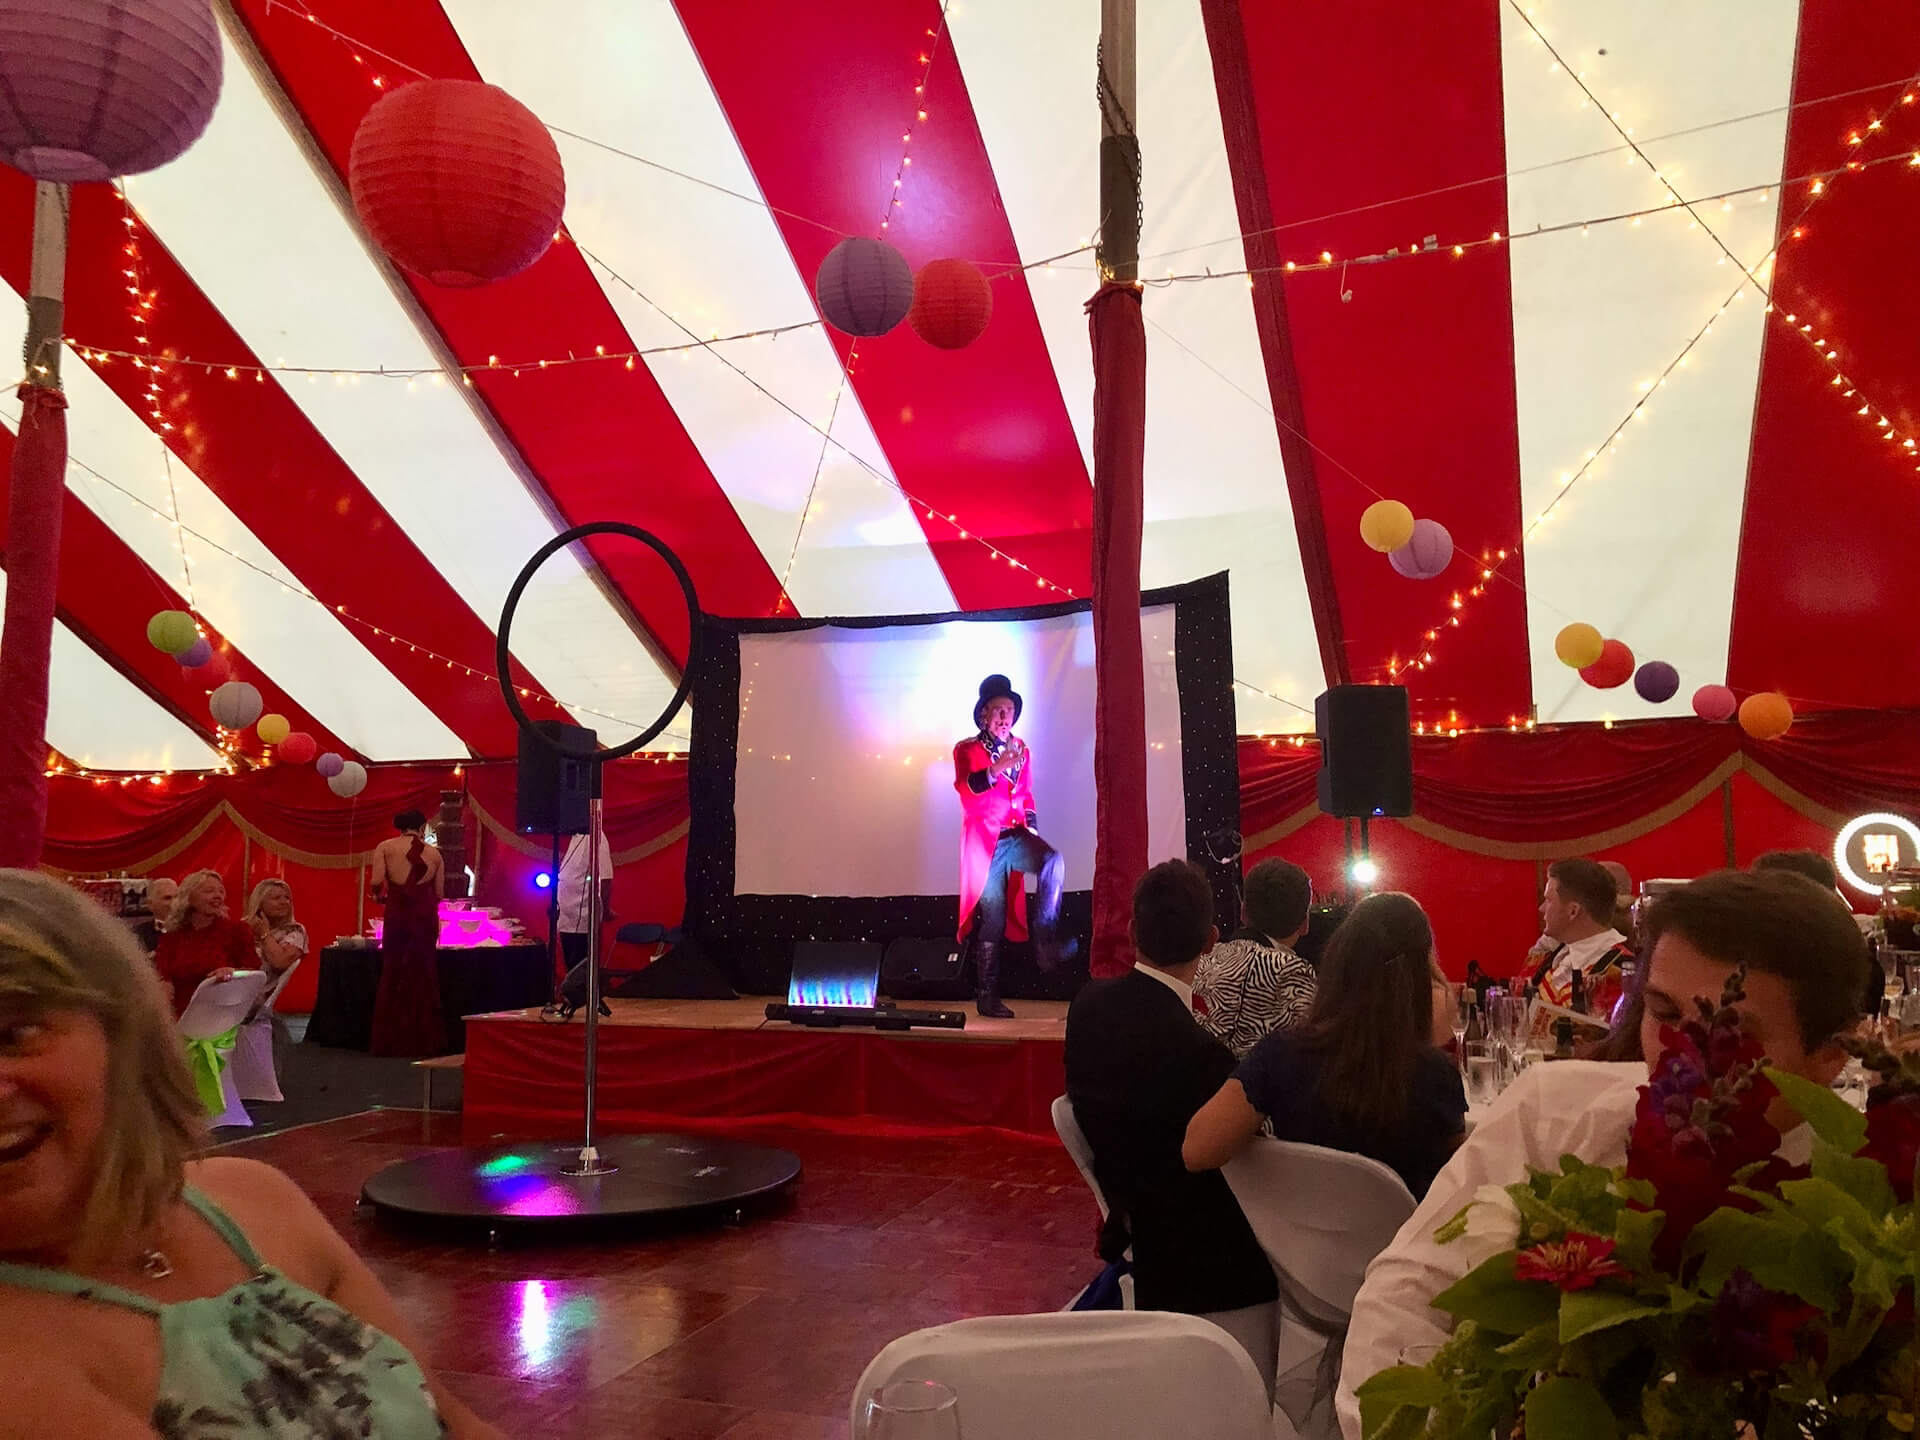 Corporate circus theme event